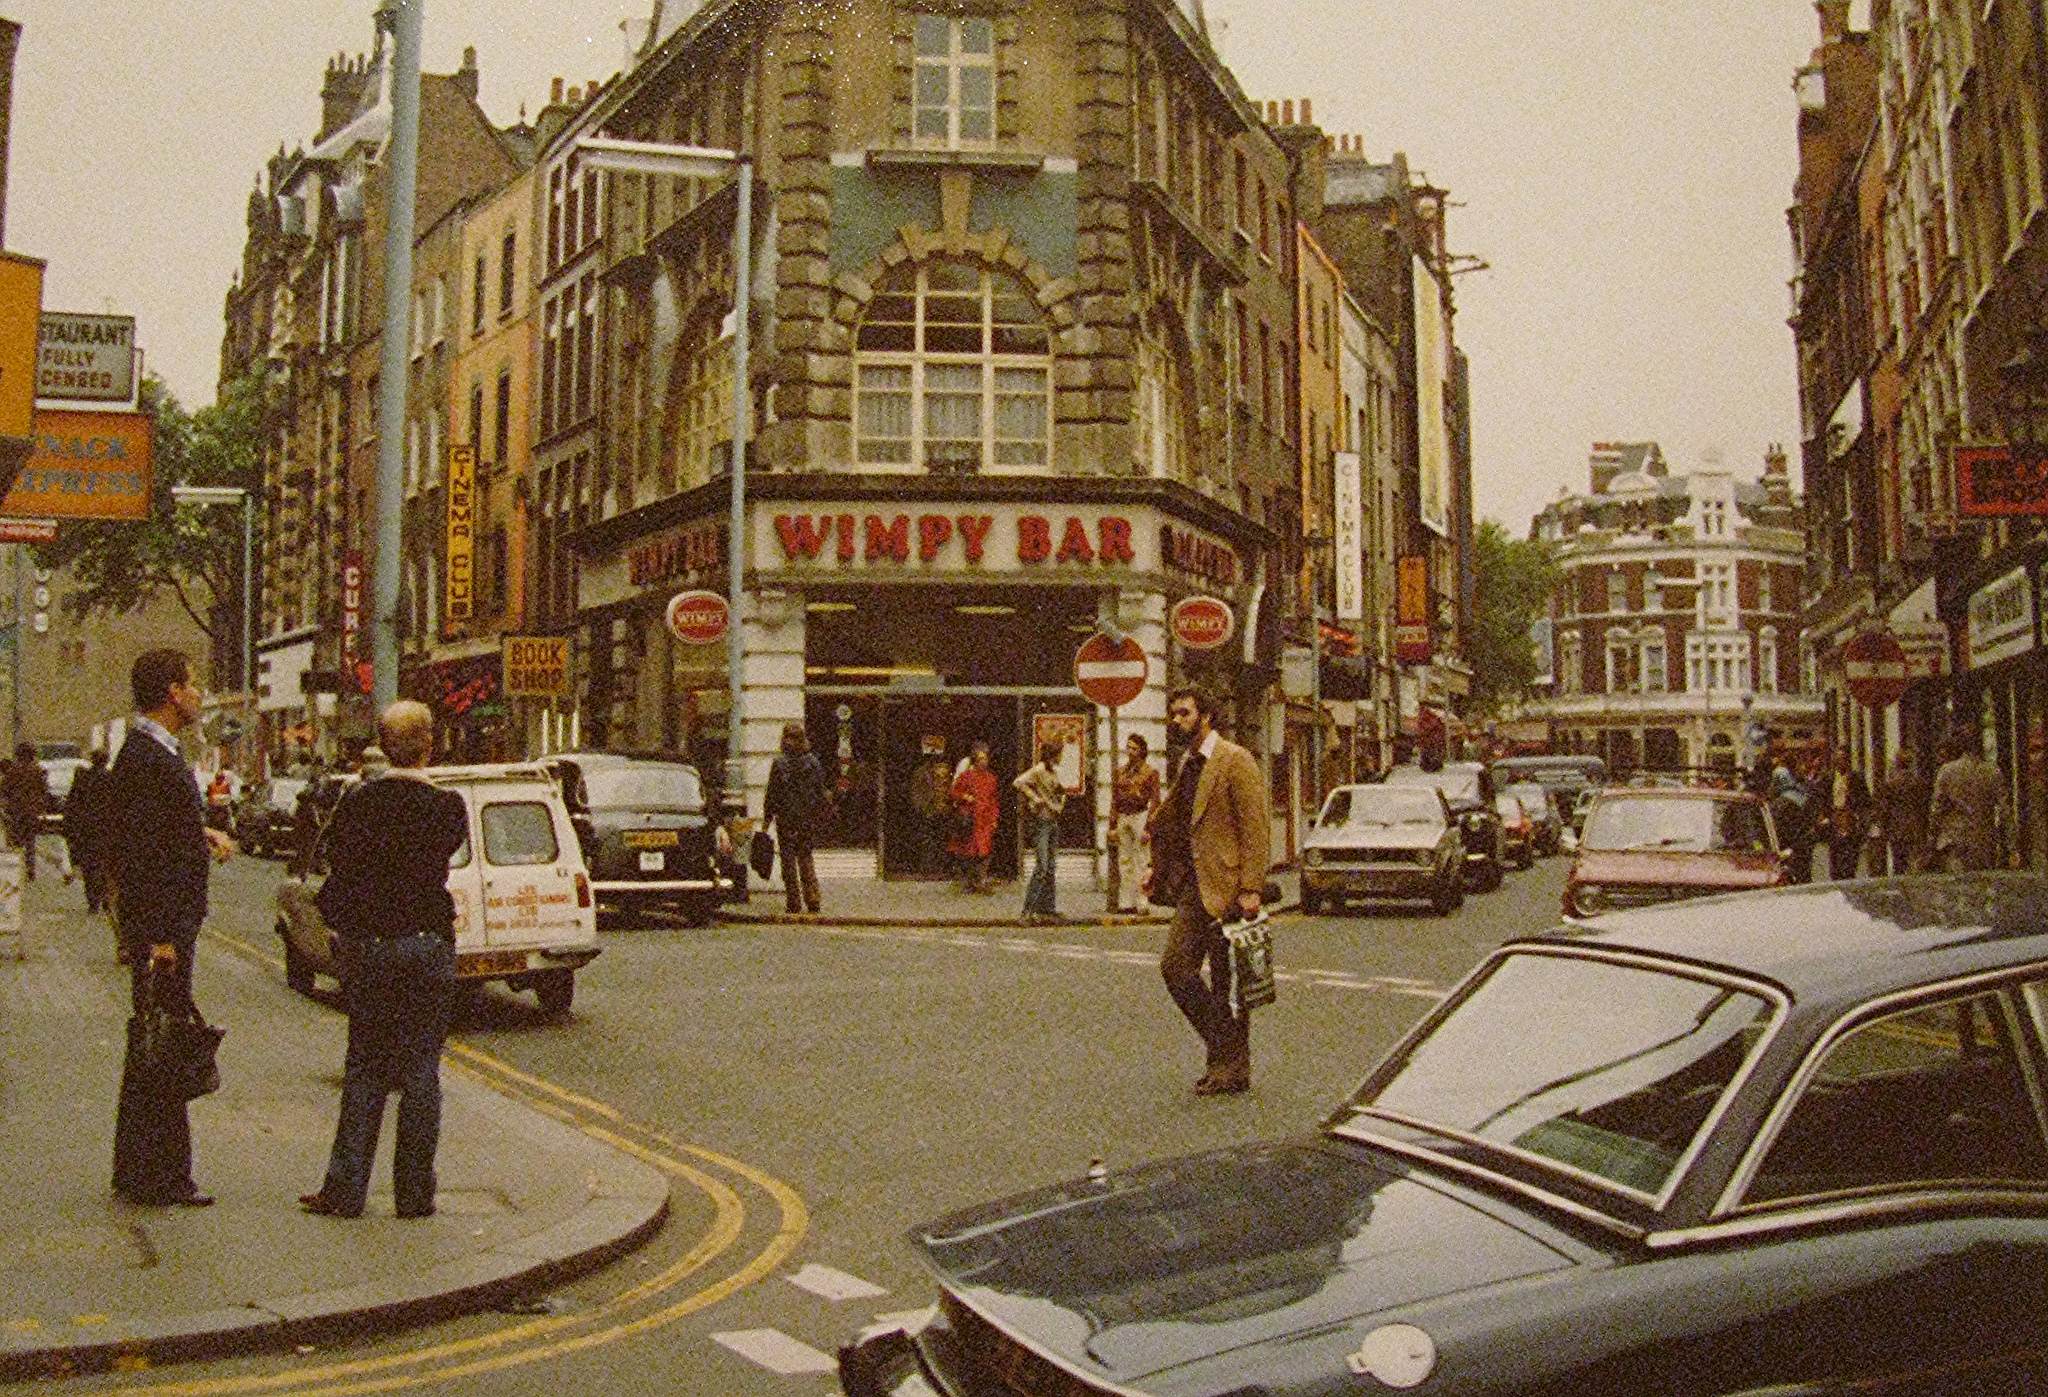 Wimpy on junction of Old Compton St and Moor Street, London 1978